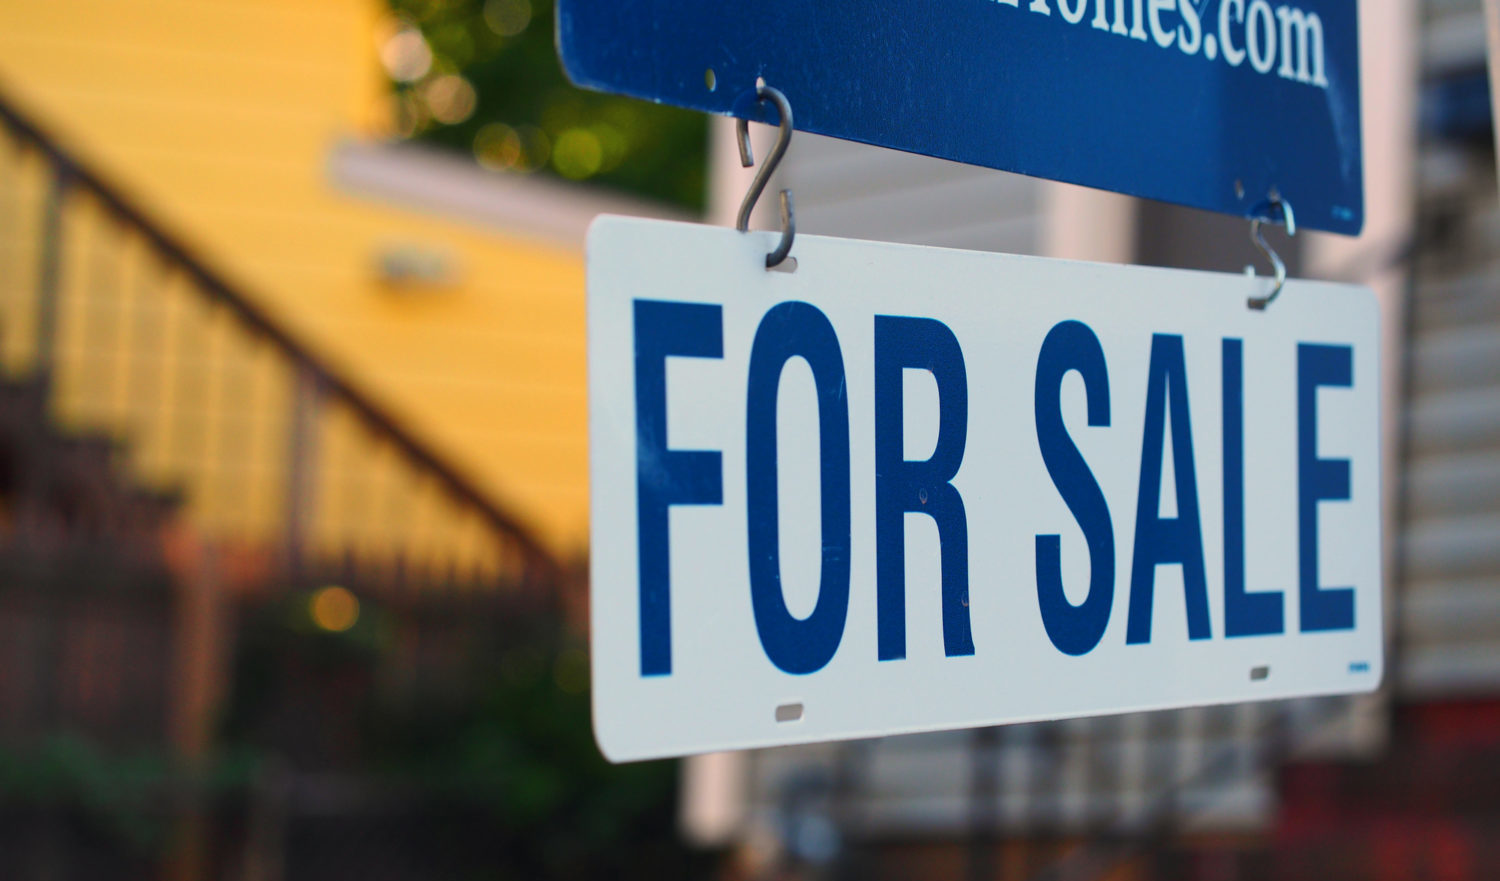 Real estate for sale, existing home for sale, signage.